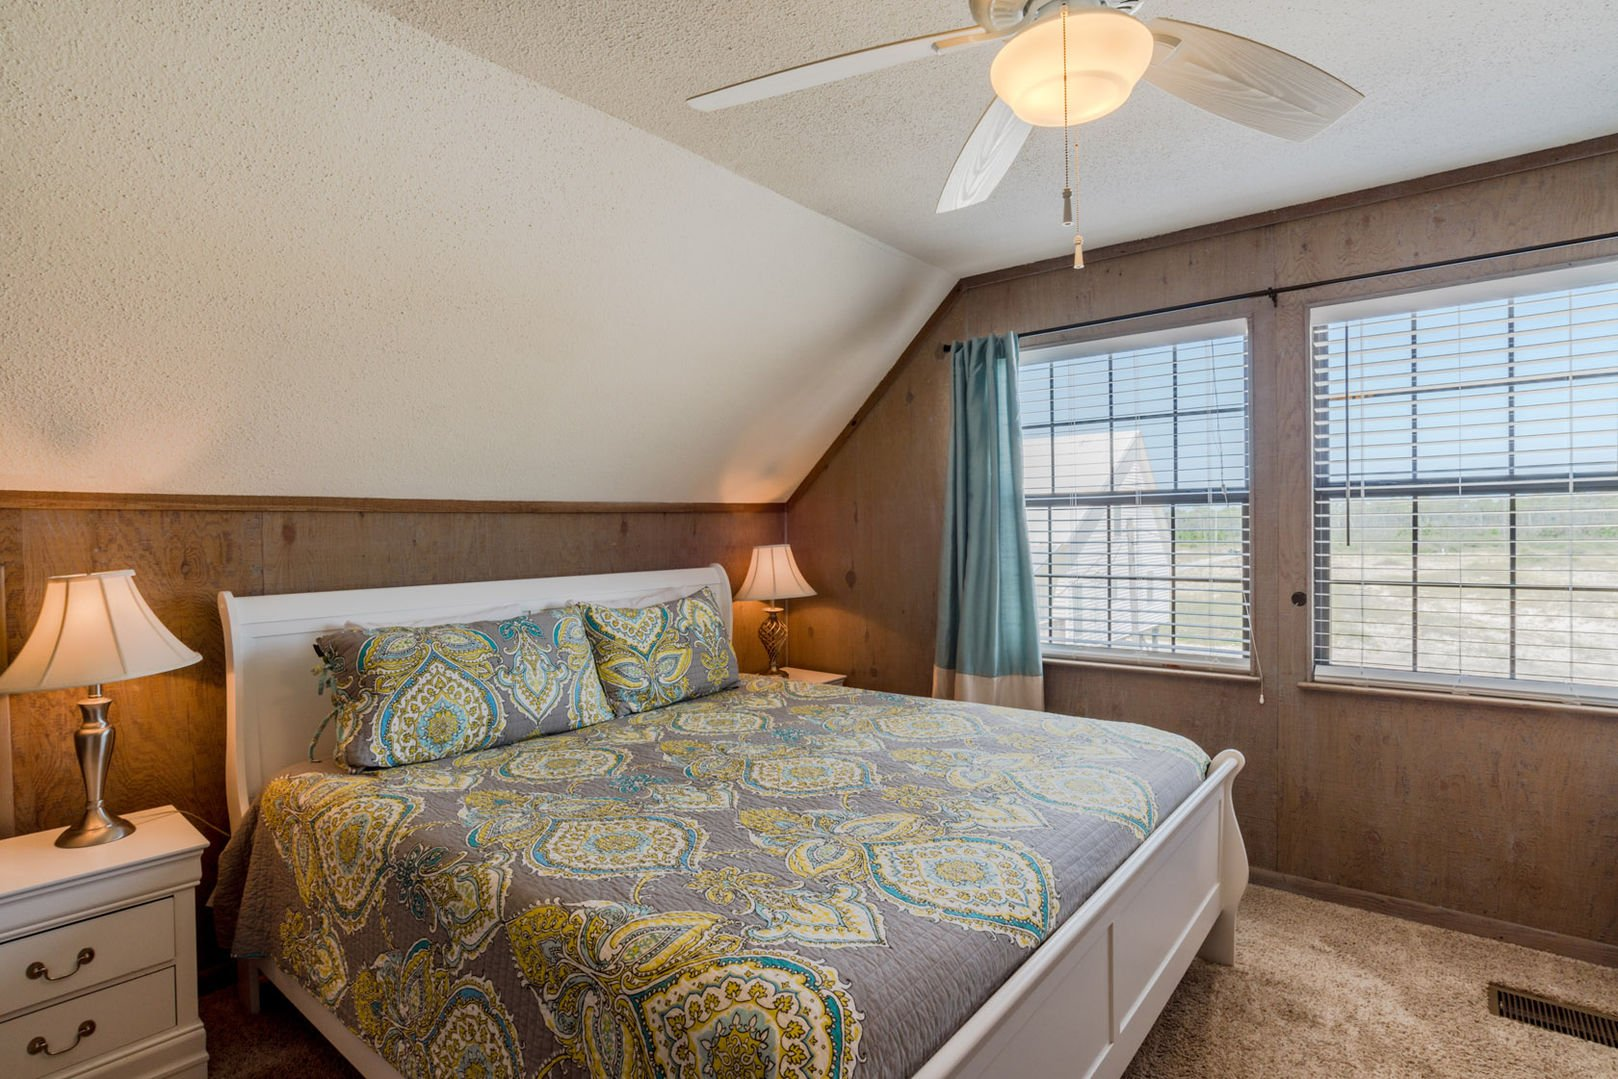 Comfortable Master Suite With North View, large bed, and twin nightstands.